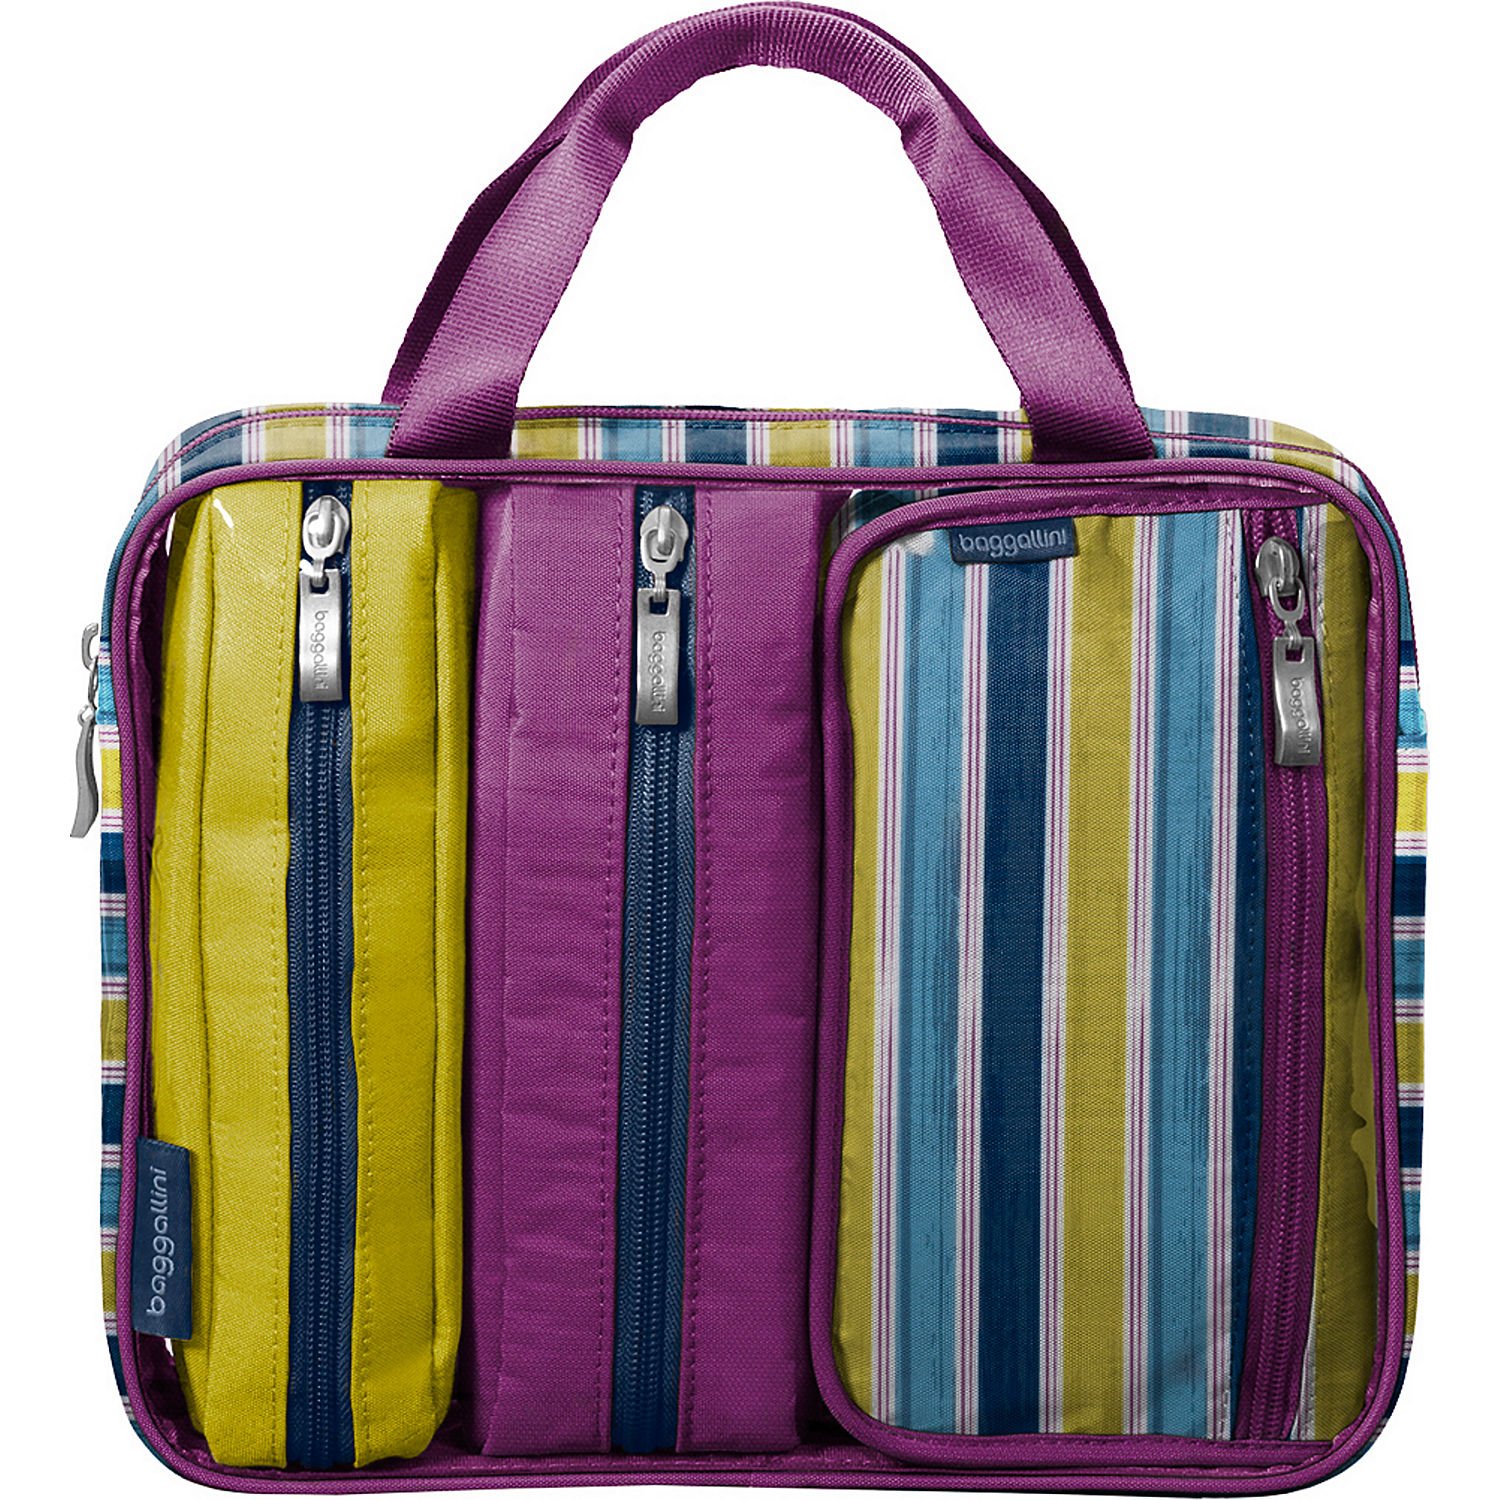 b18144b93546 This colorful option comes with 3 bags to store your cosmetics